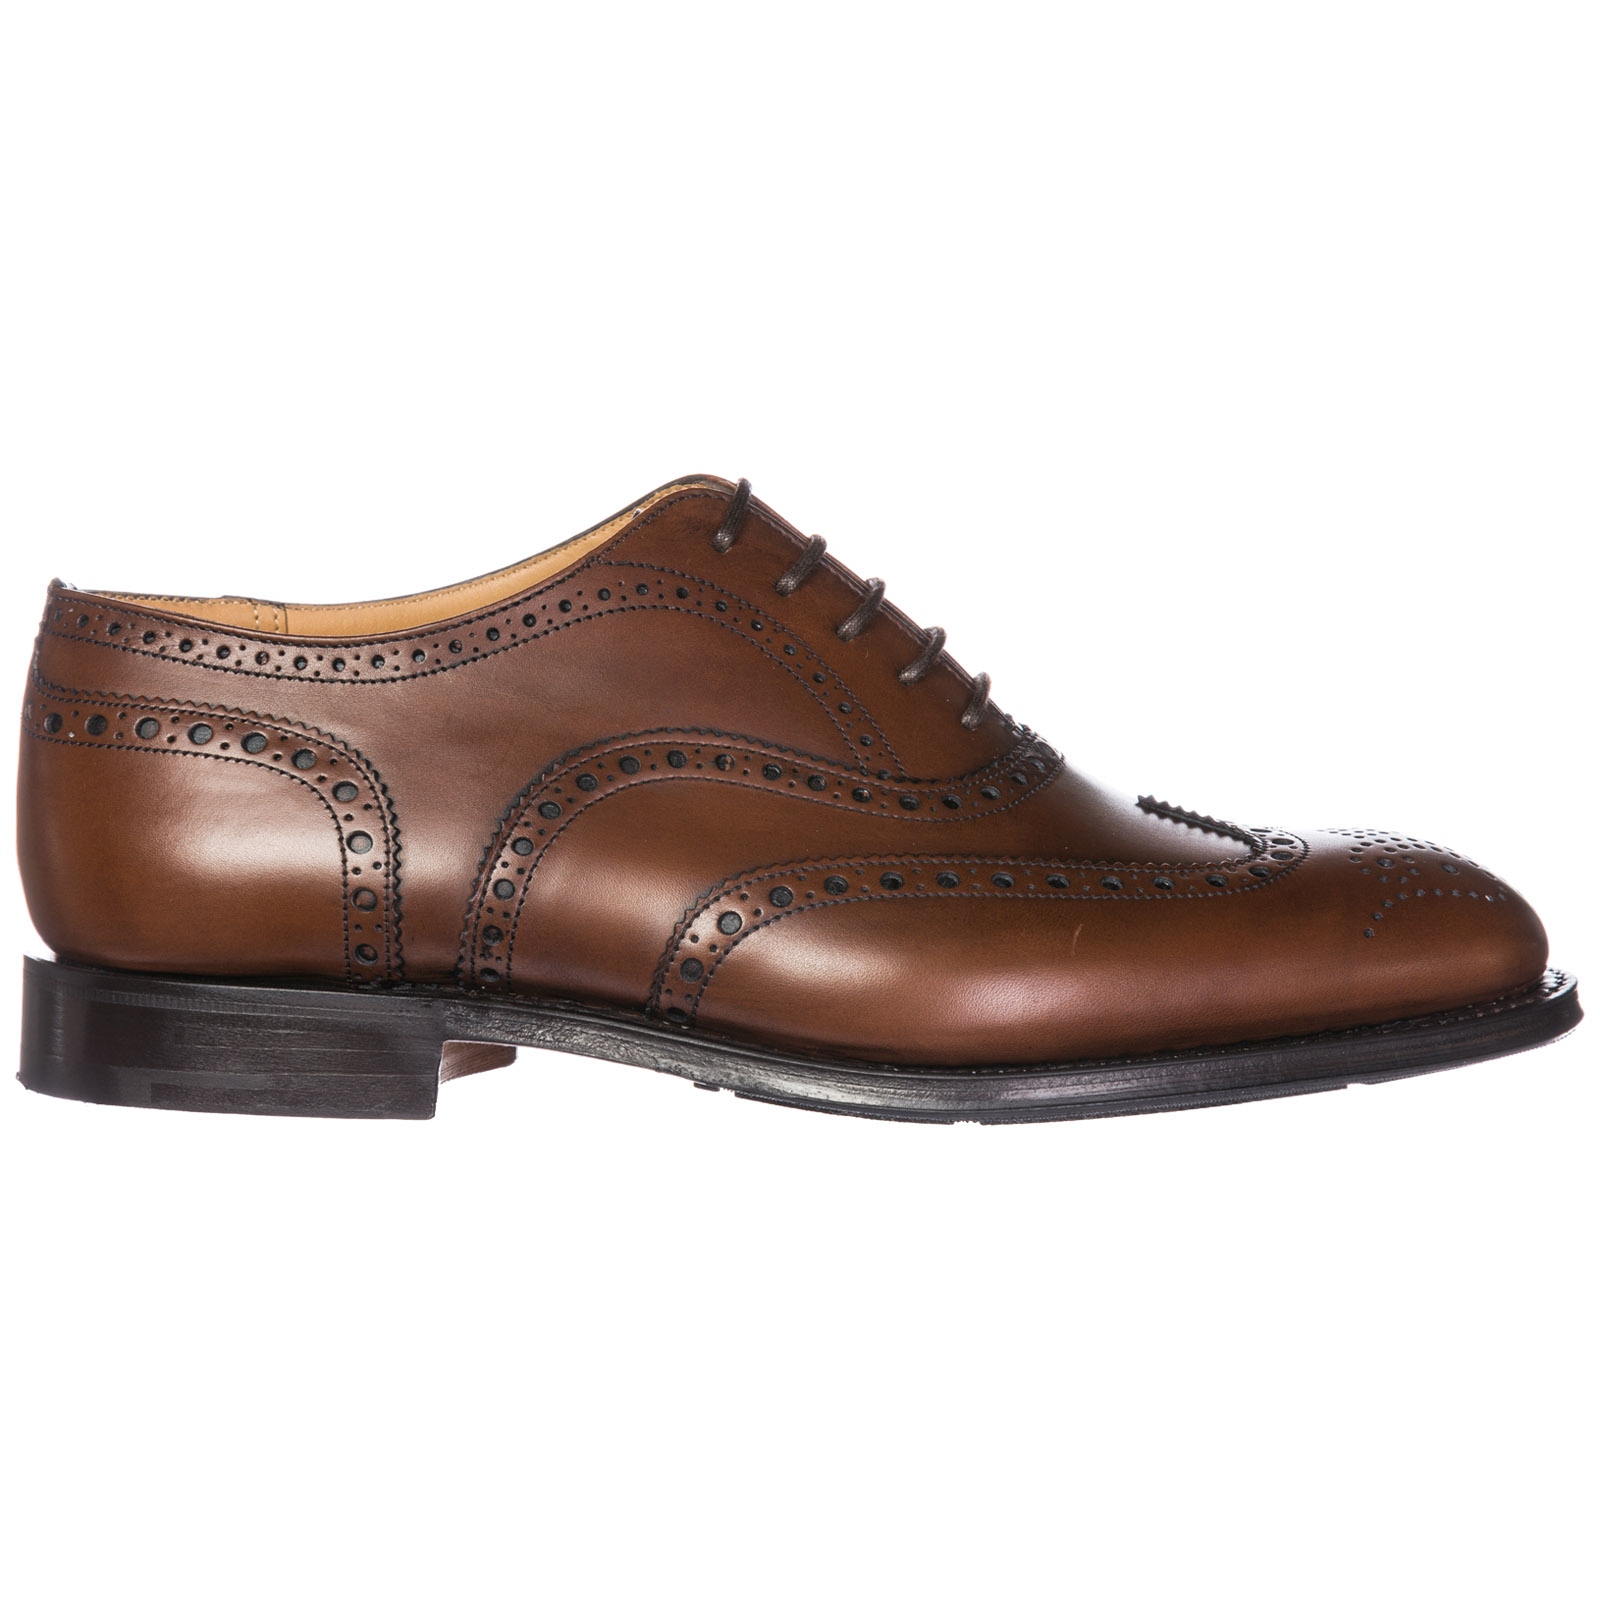 Men's classic leather lace up laced formal shoes tarvin brogue